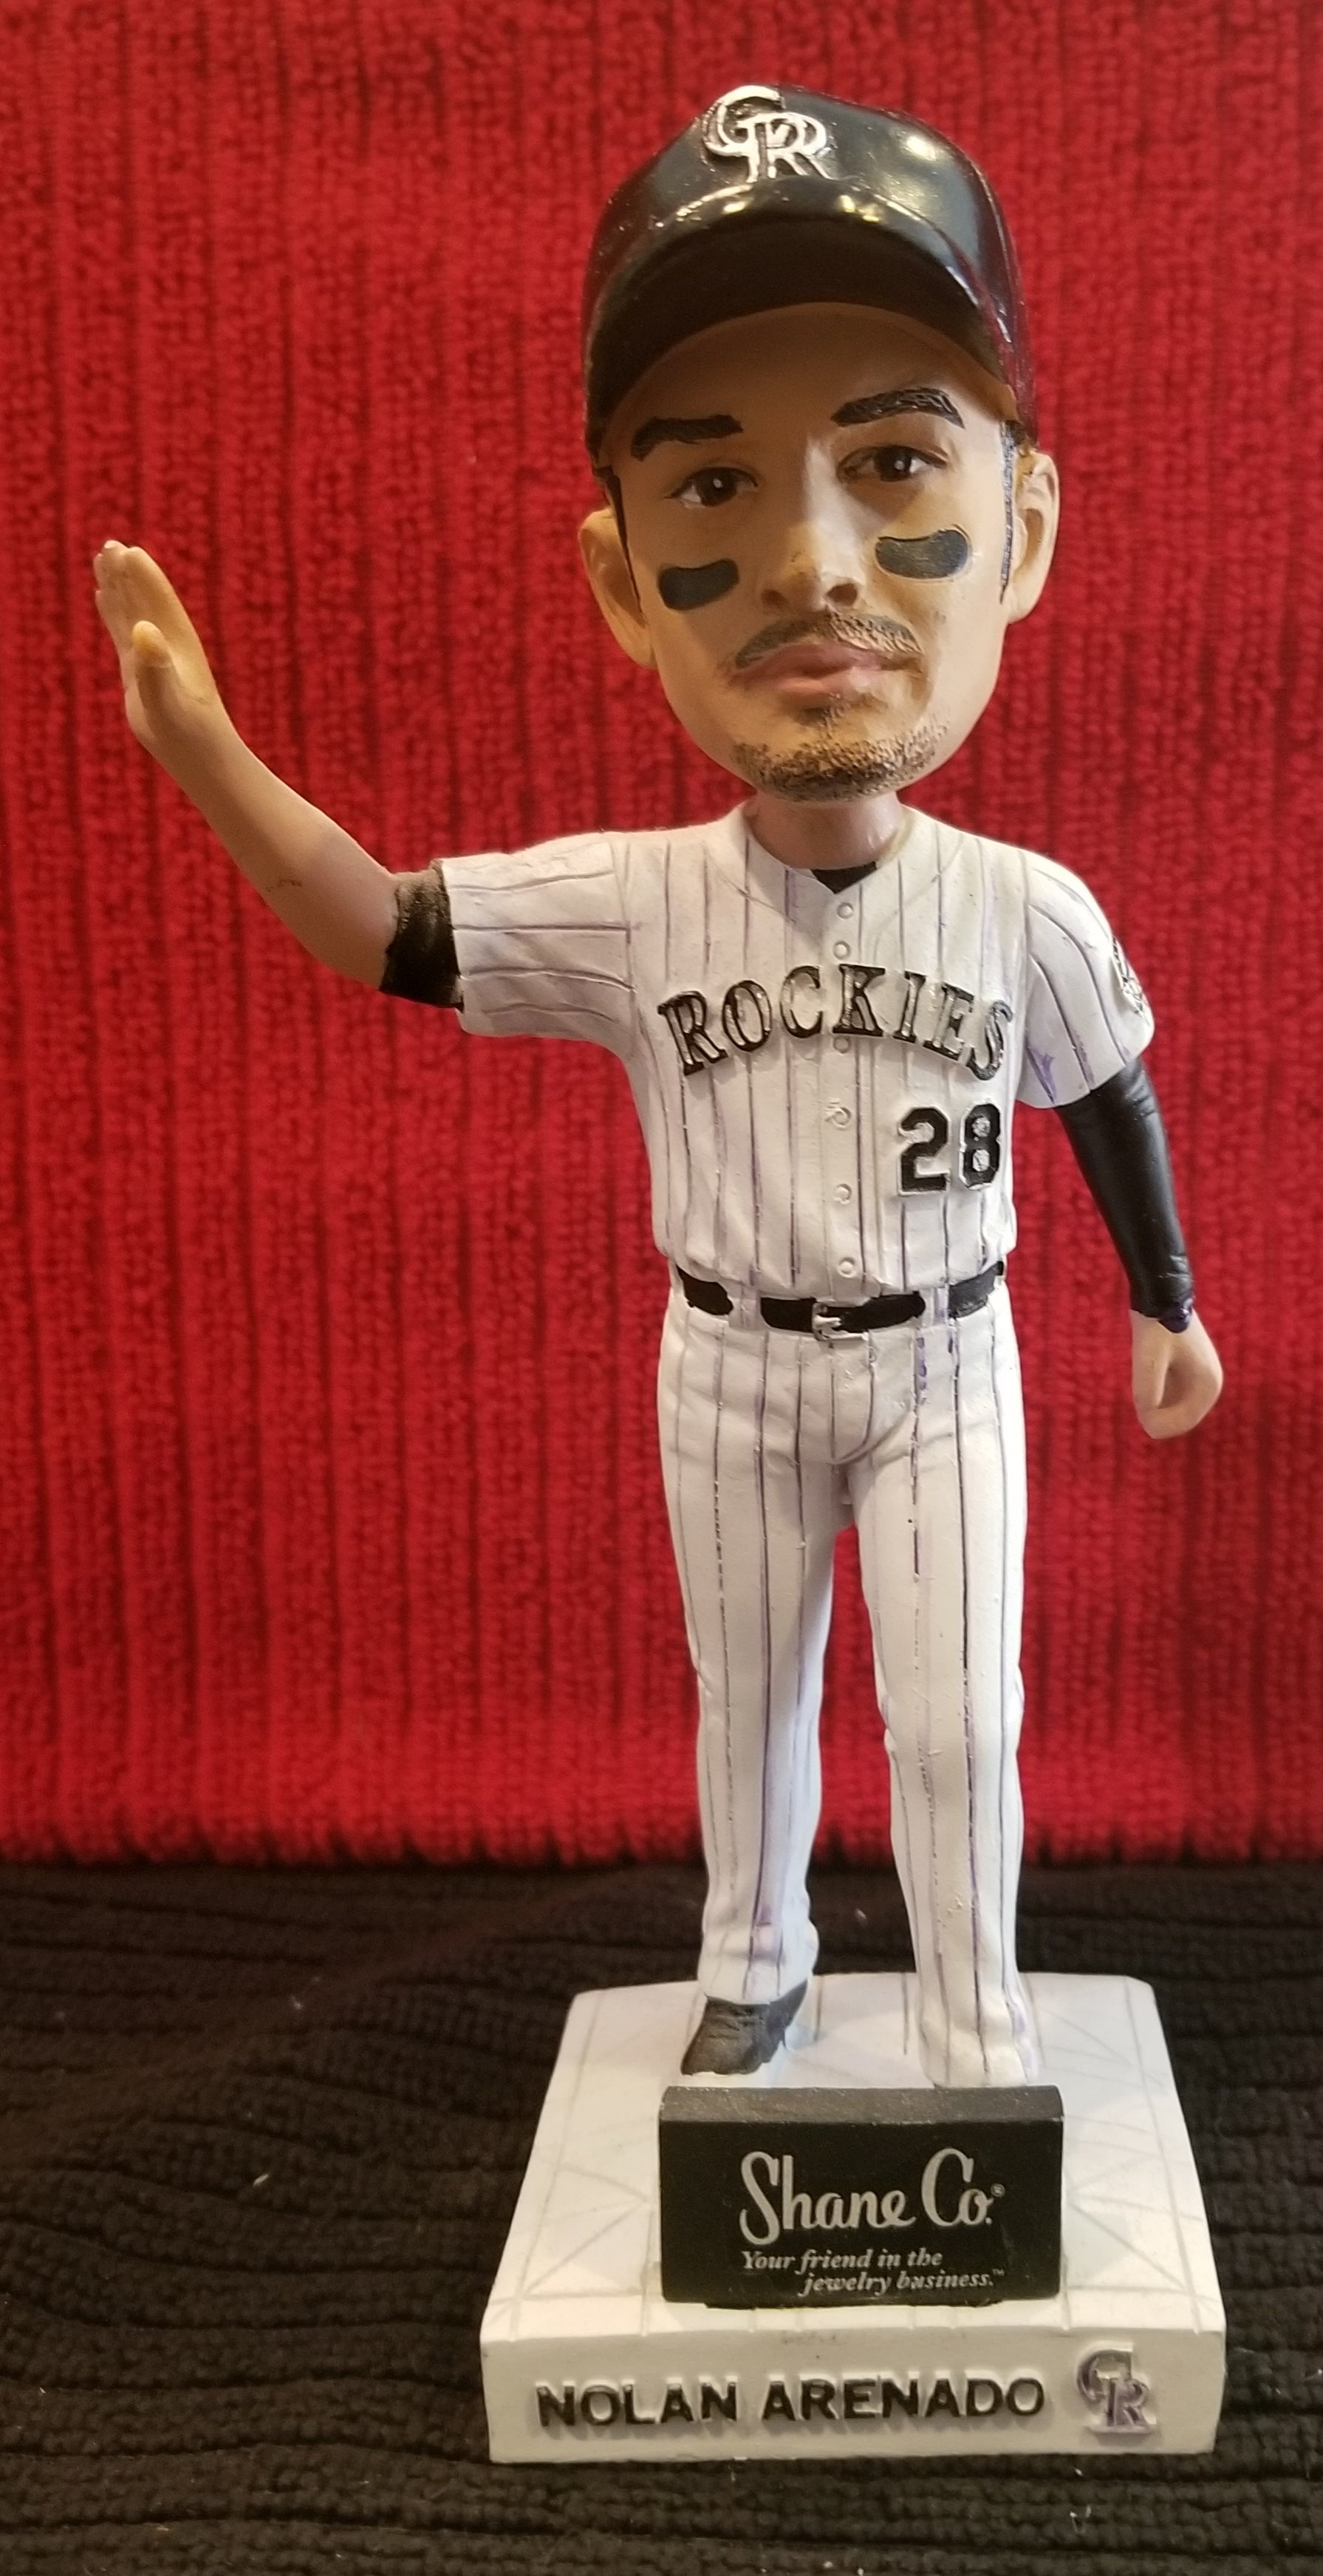 Nolan Arenado #28 2016 Colorado Rockies Shane Company Sponsored Diamond Leader (SGA) Bobblehead